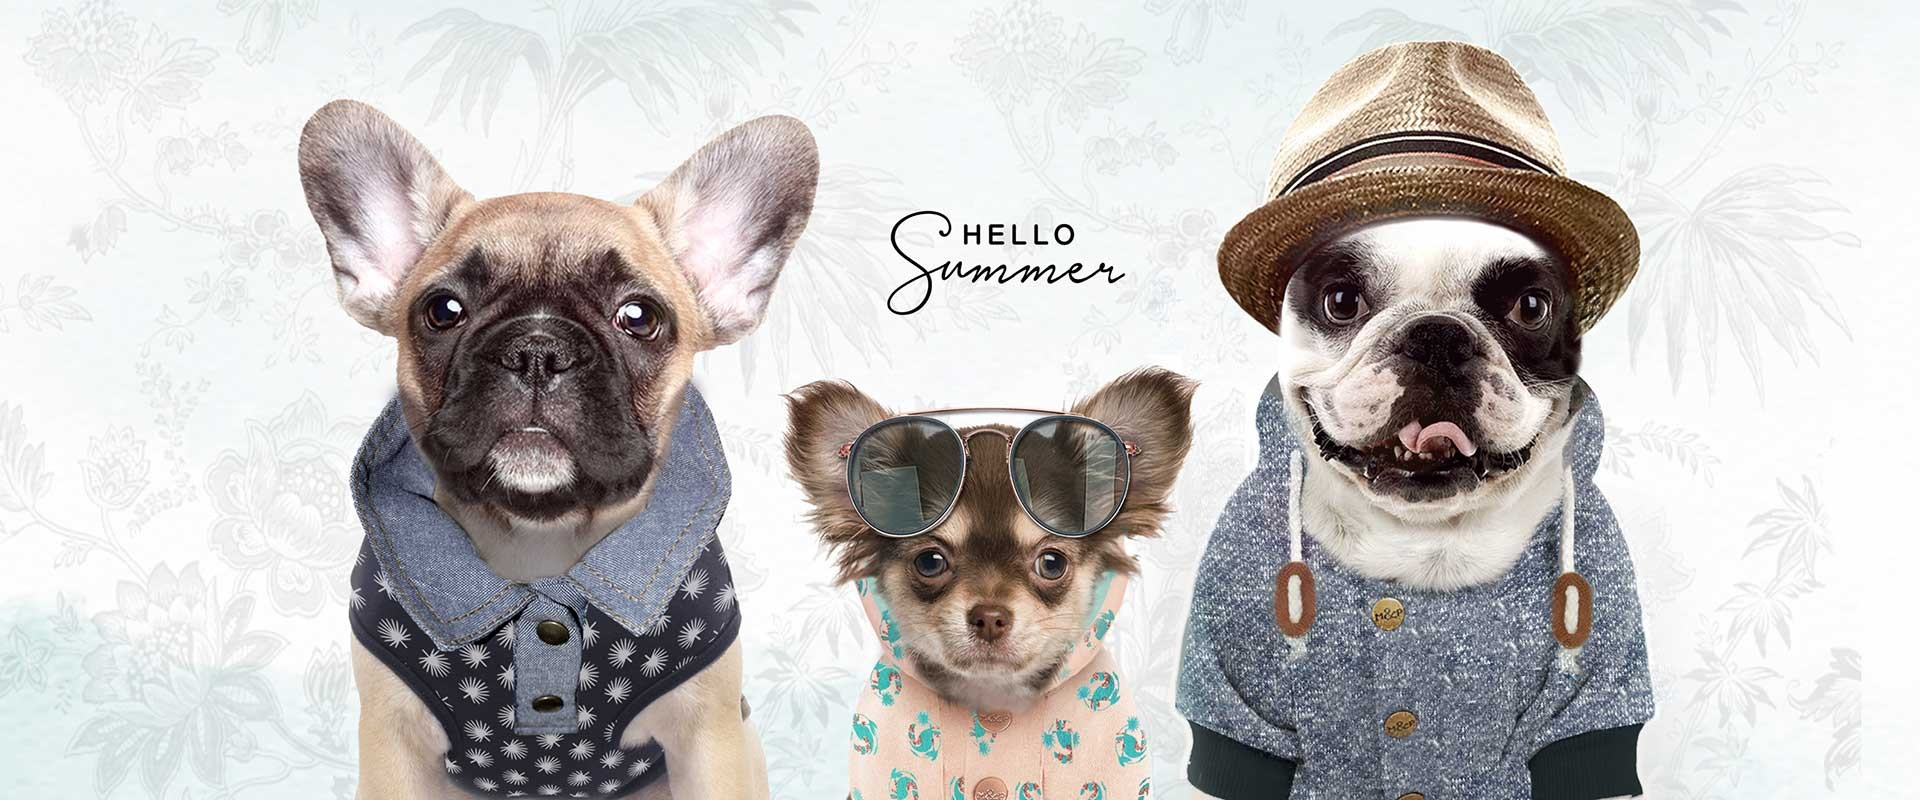 Milk & Pepper, Fashion And Accessories For Dogs & Cats - SUMMER 19